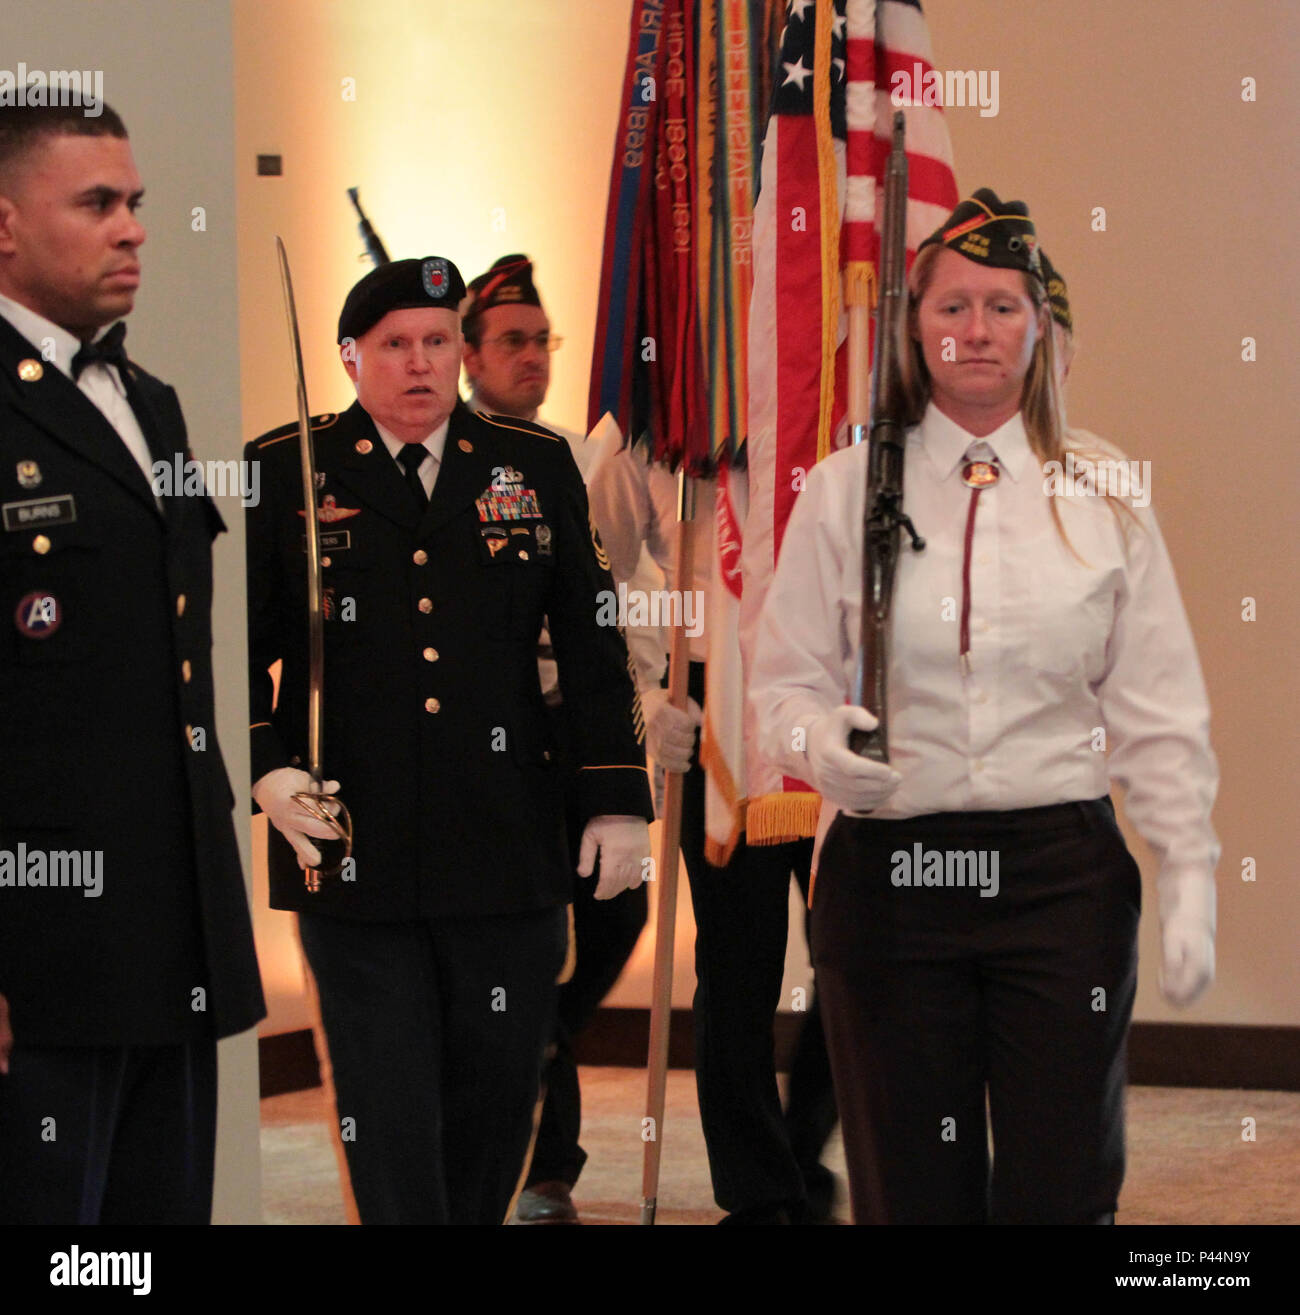 Posting of the Colors during the 76th ORC's Utah Army Ball in celebration of the United States Army's 241st birthday, held at the Living Planet Aquarium, Salt Lake City, June 11. Stock Photo